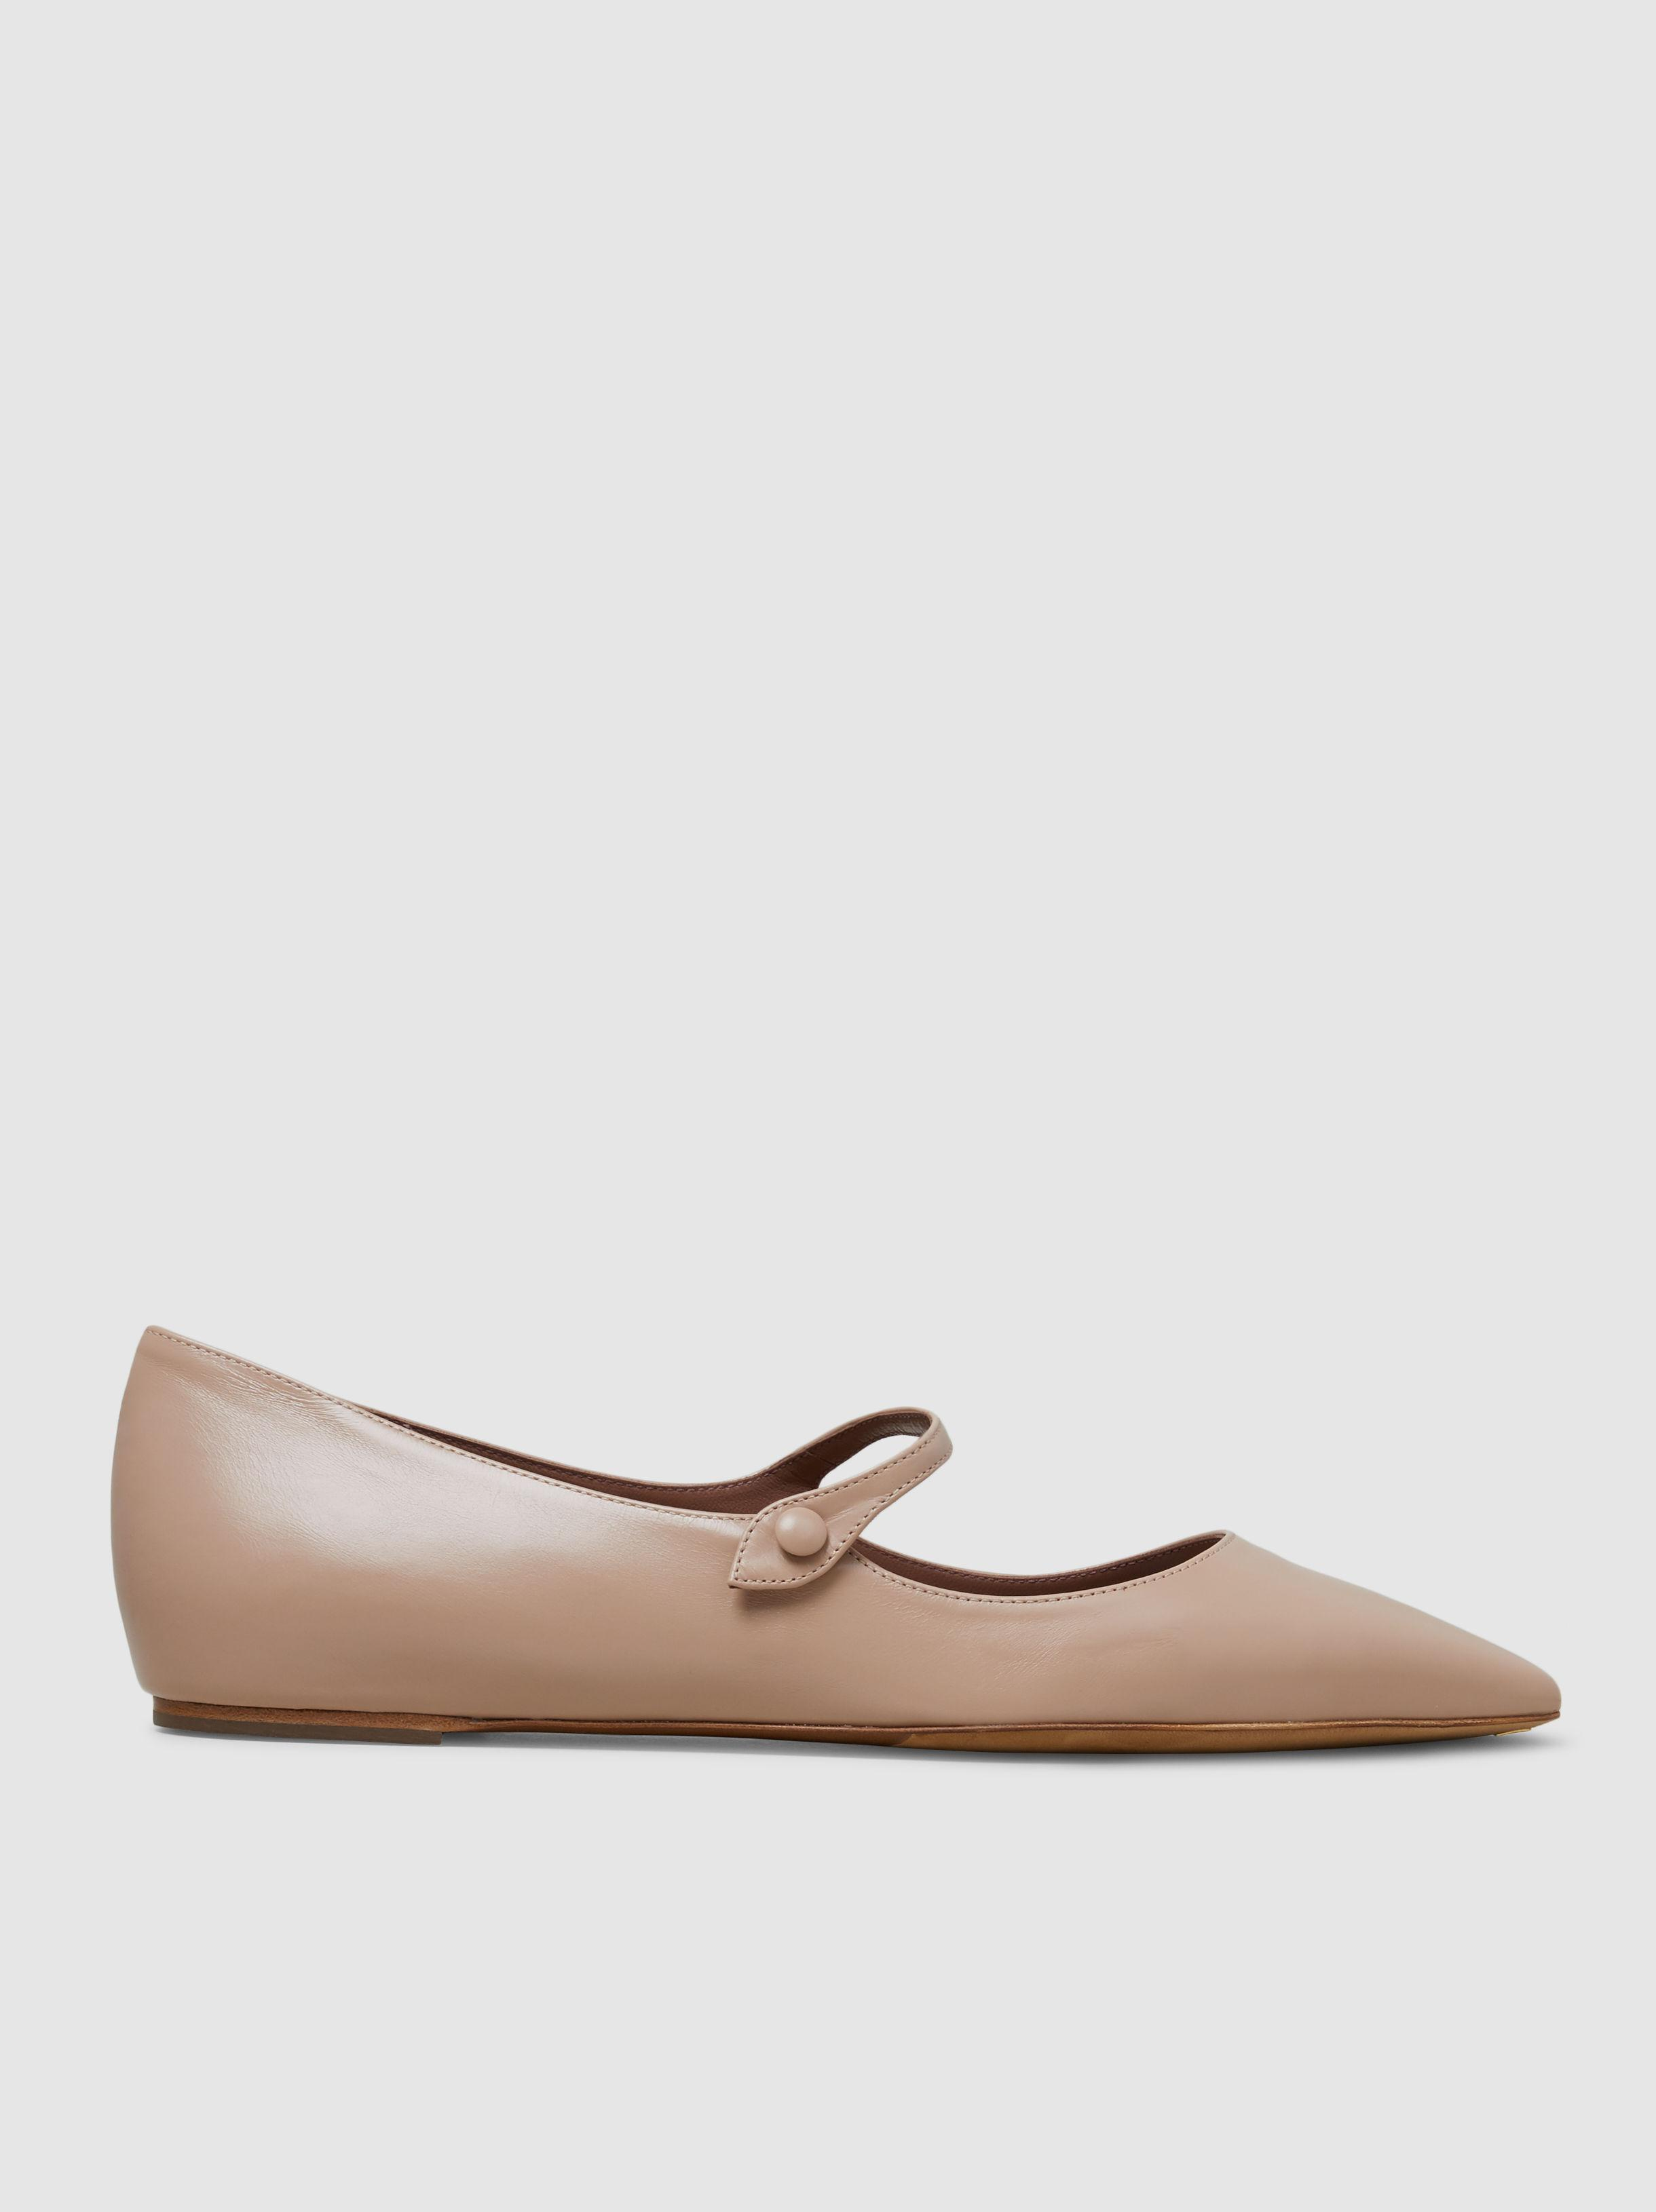 Tabitha Simmons Hermione Calf Leather Flats xuBMjgTC